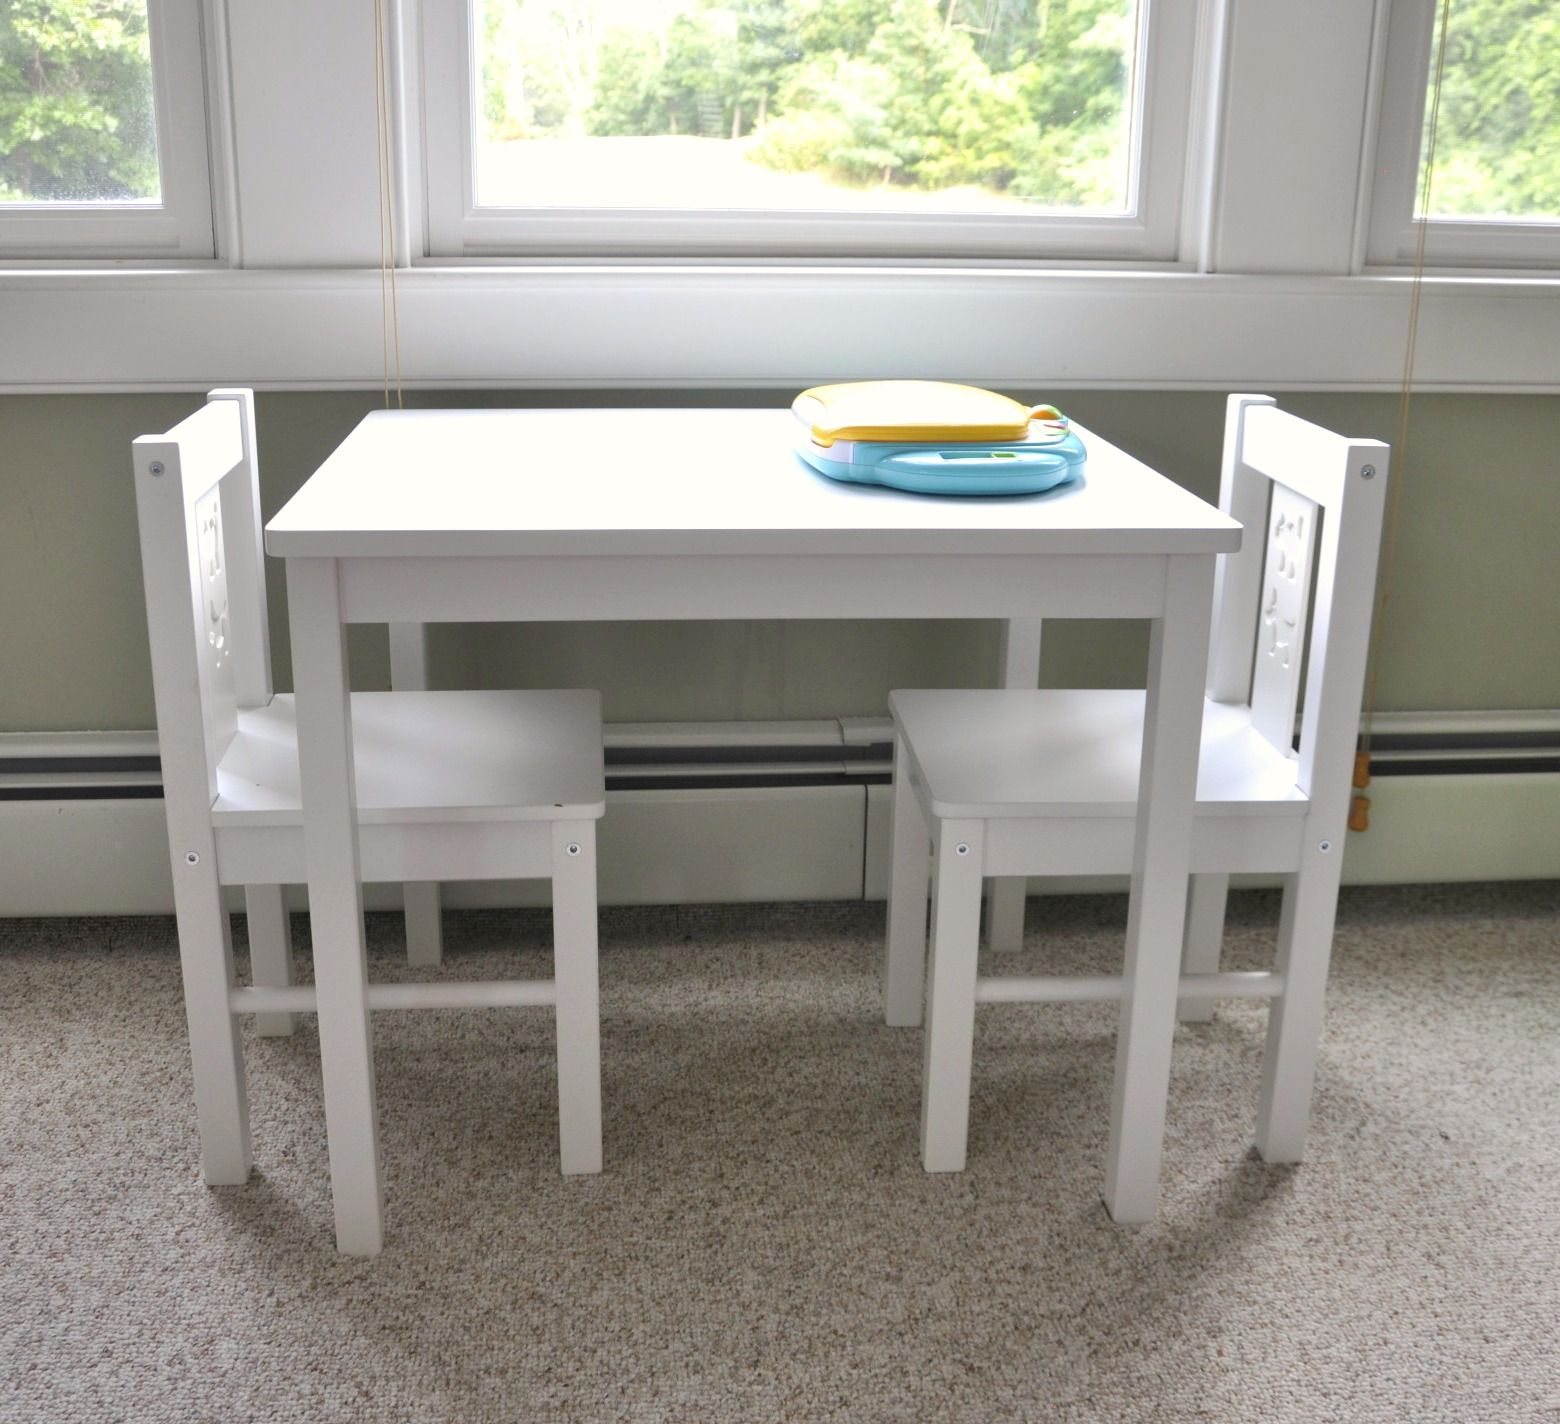 Kids Playroom Table And Chairs ikea expedit playroom storage reveal | playrooms, nook and ikea